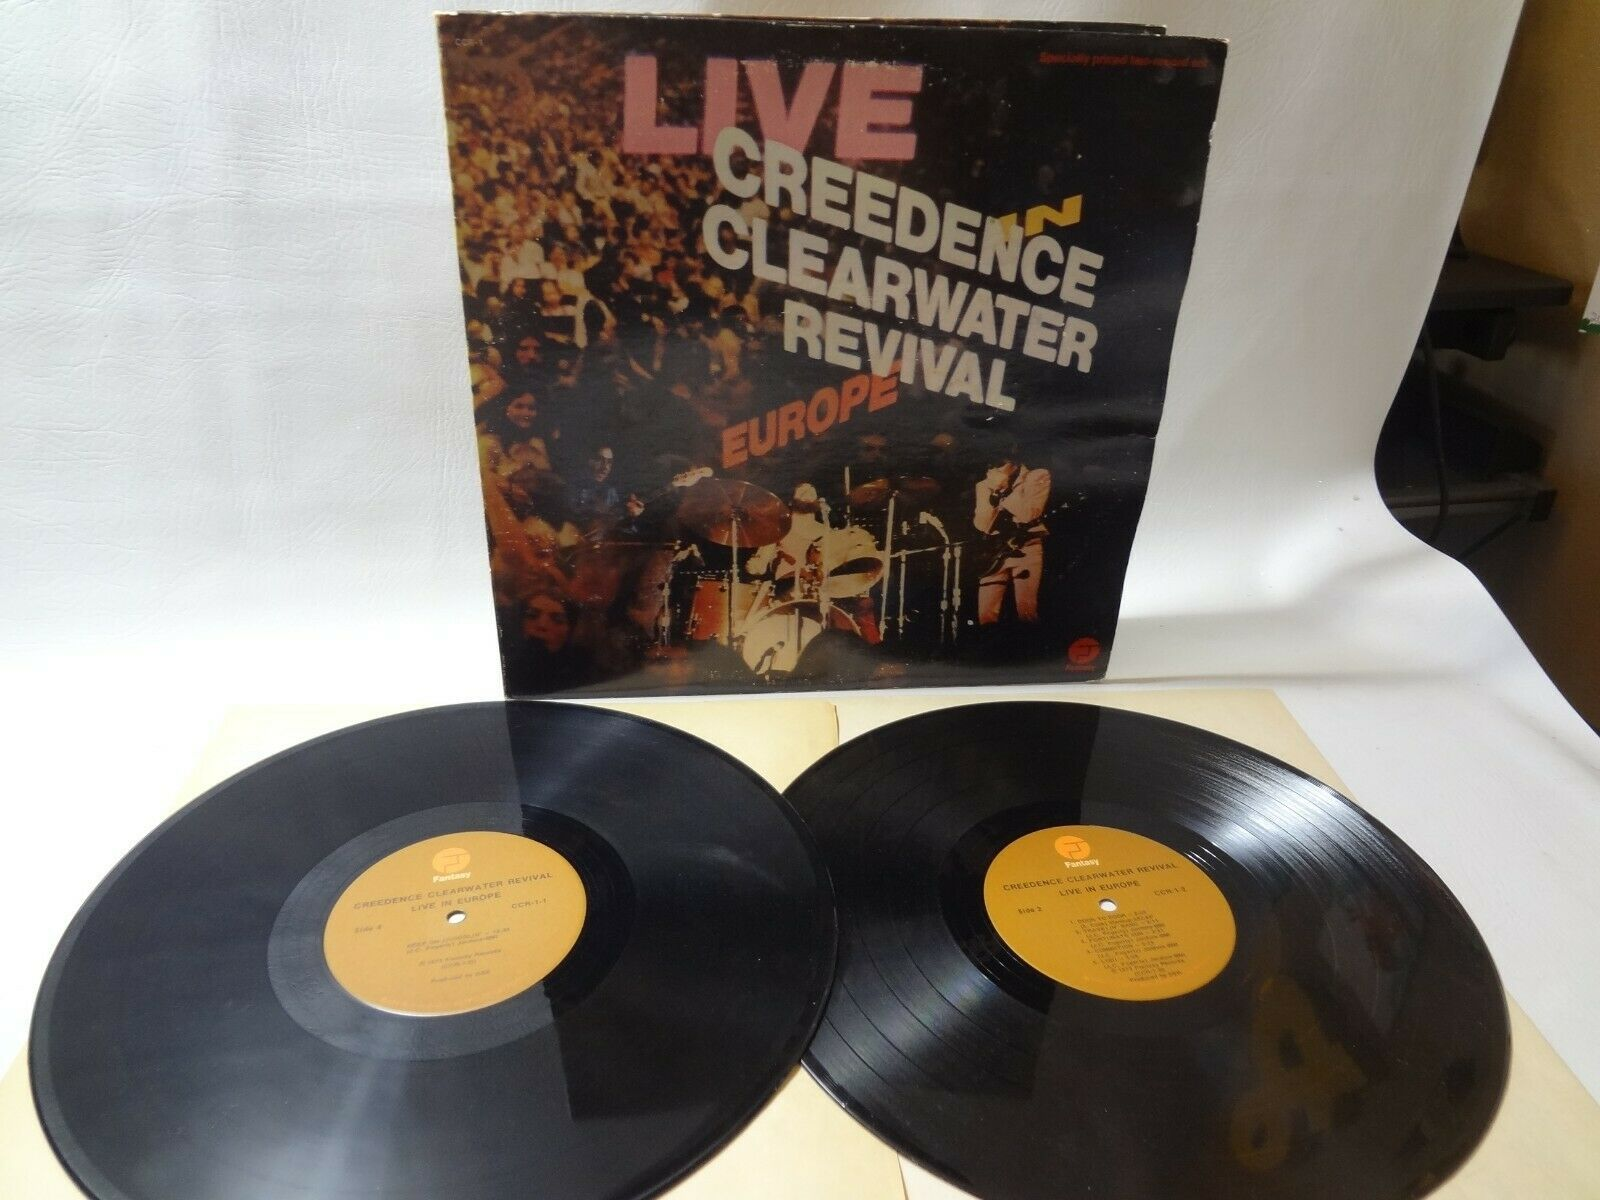 CREEDENCE CLEARWATER REVIVAL LIVE IN EUROPE double  record album LP